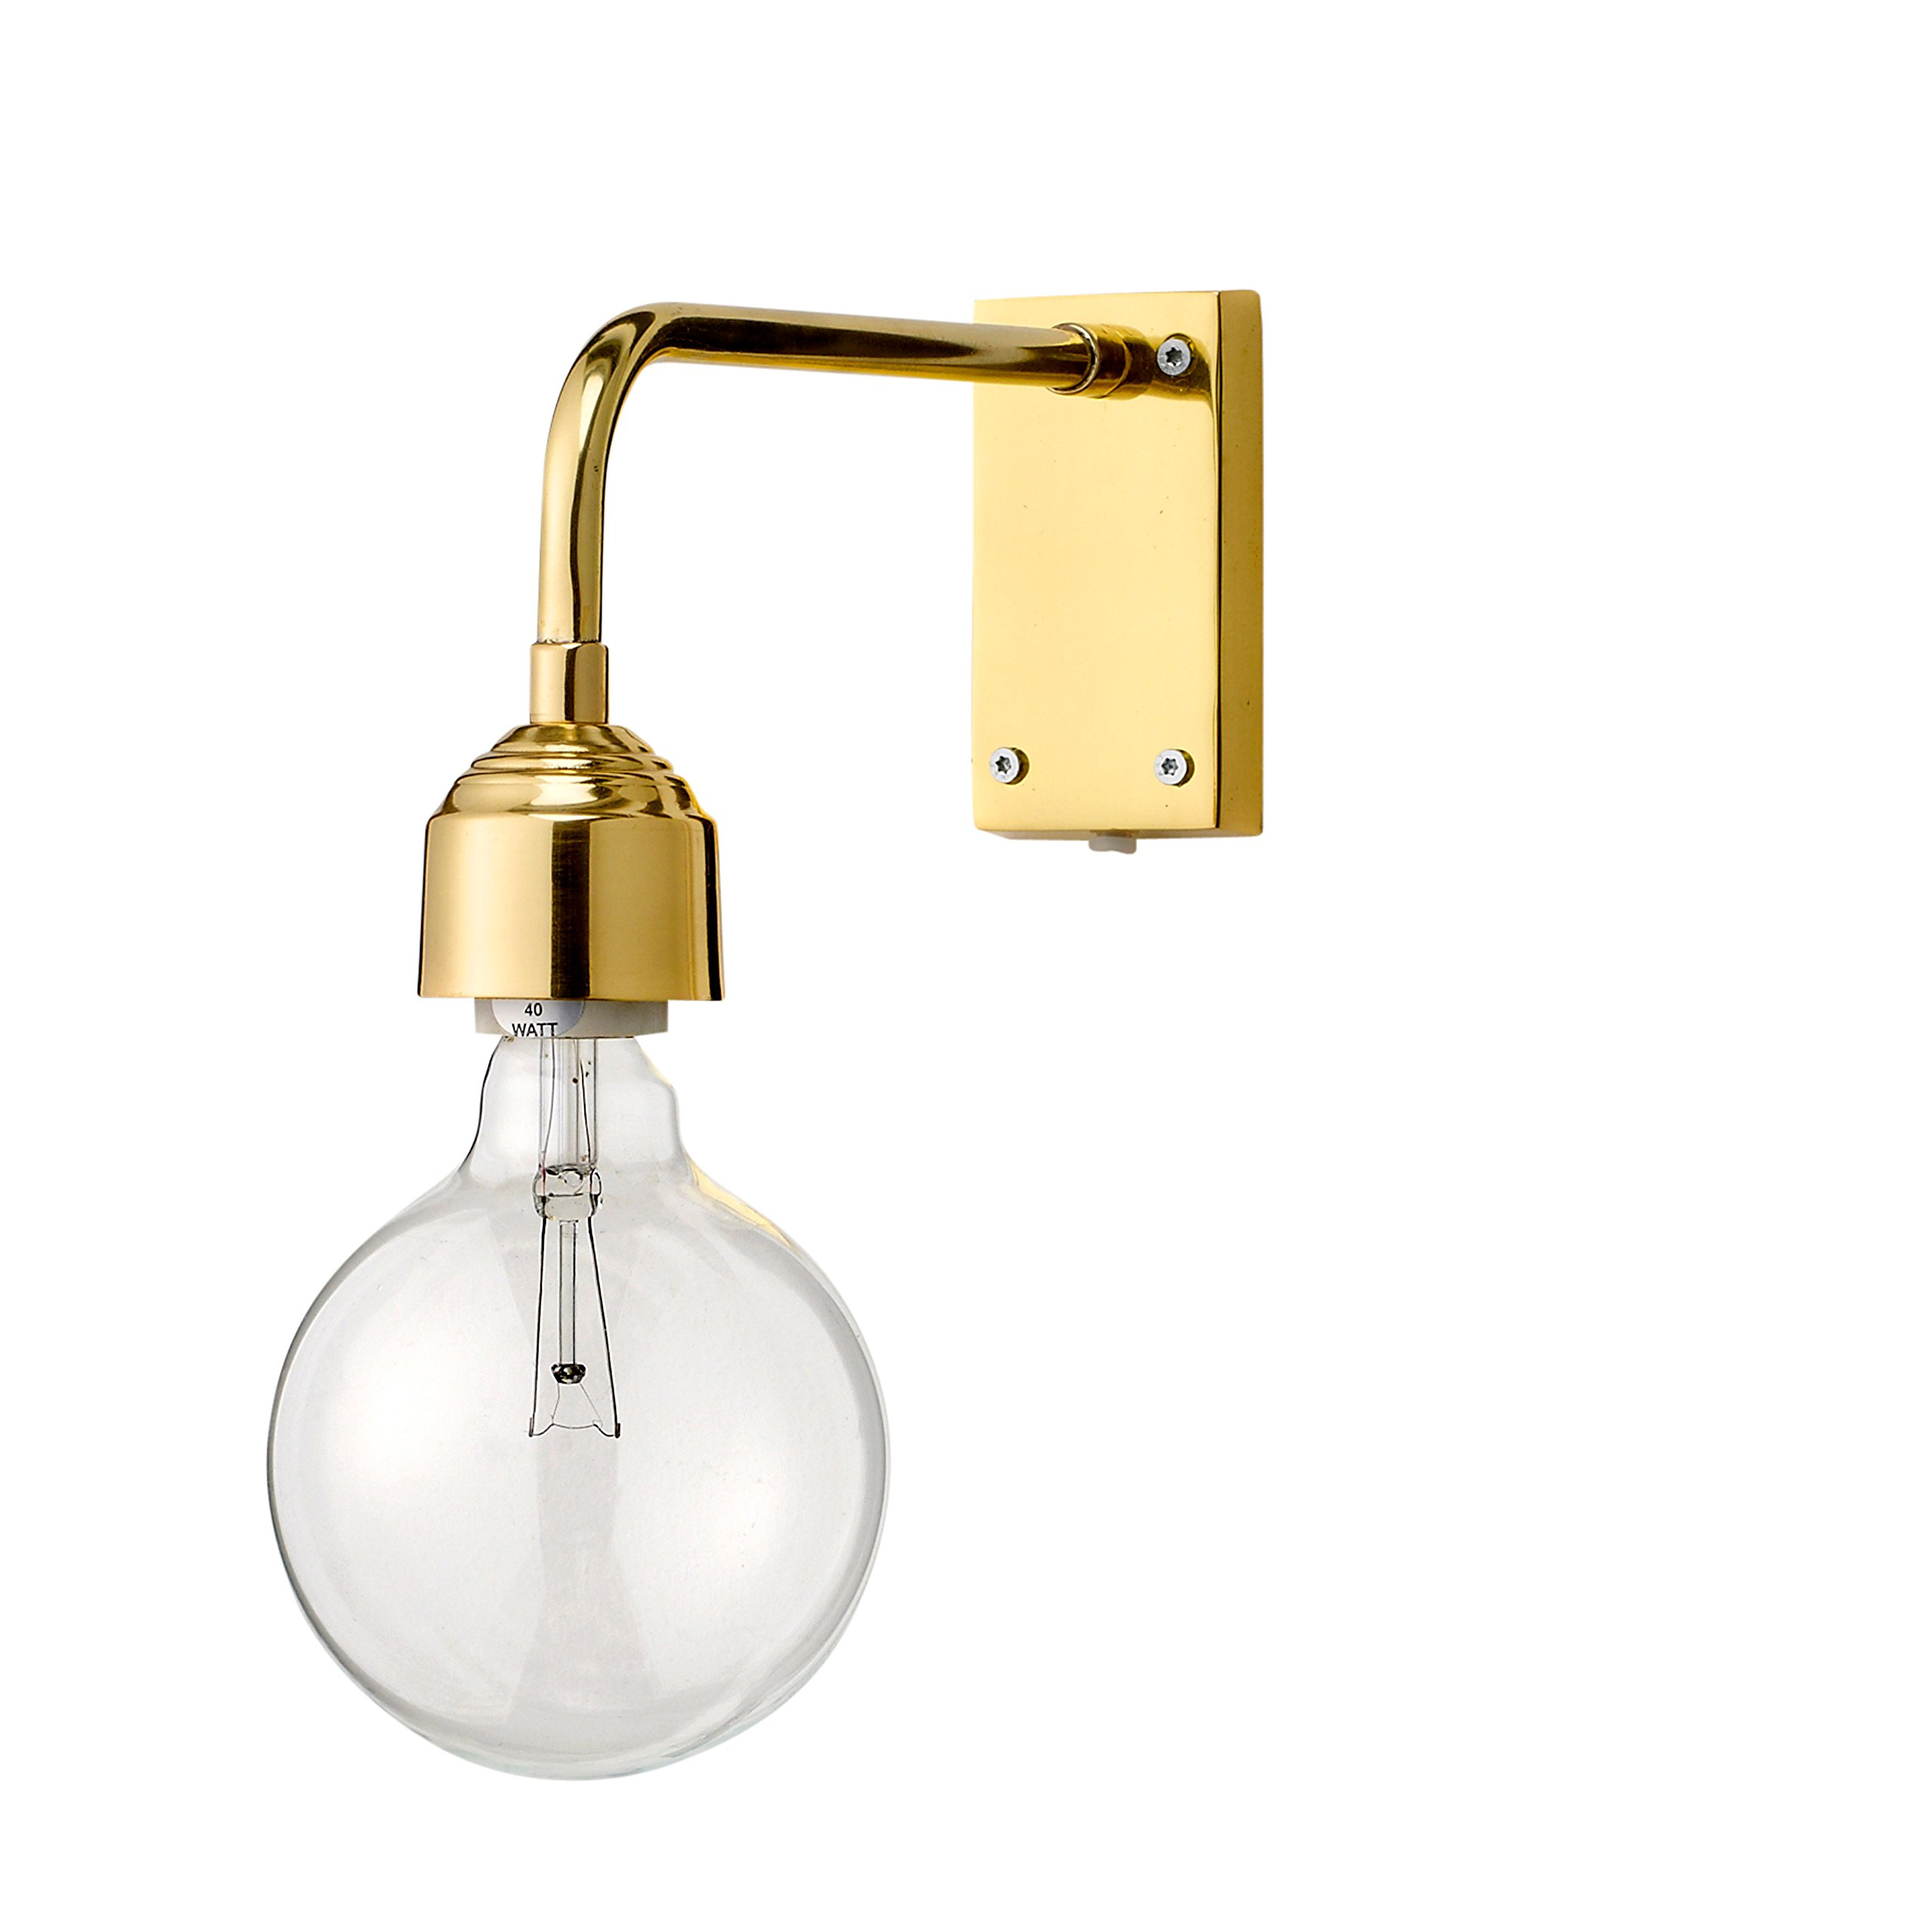 Bloomingville Brass Wall Lamp, Gold Electroplated Finish